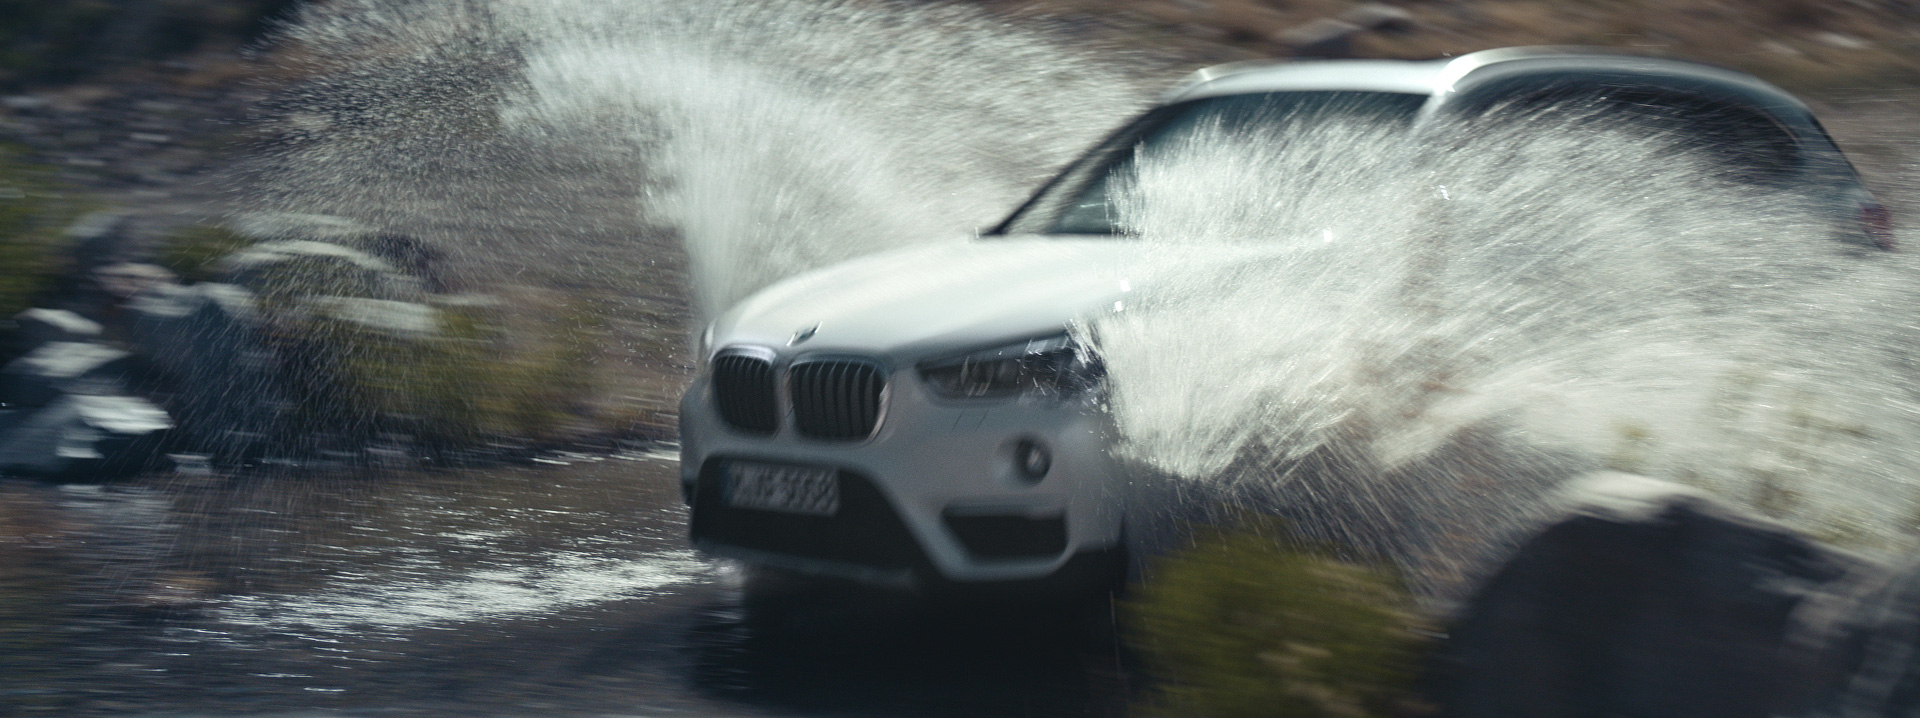 BMW 'The Wave'